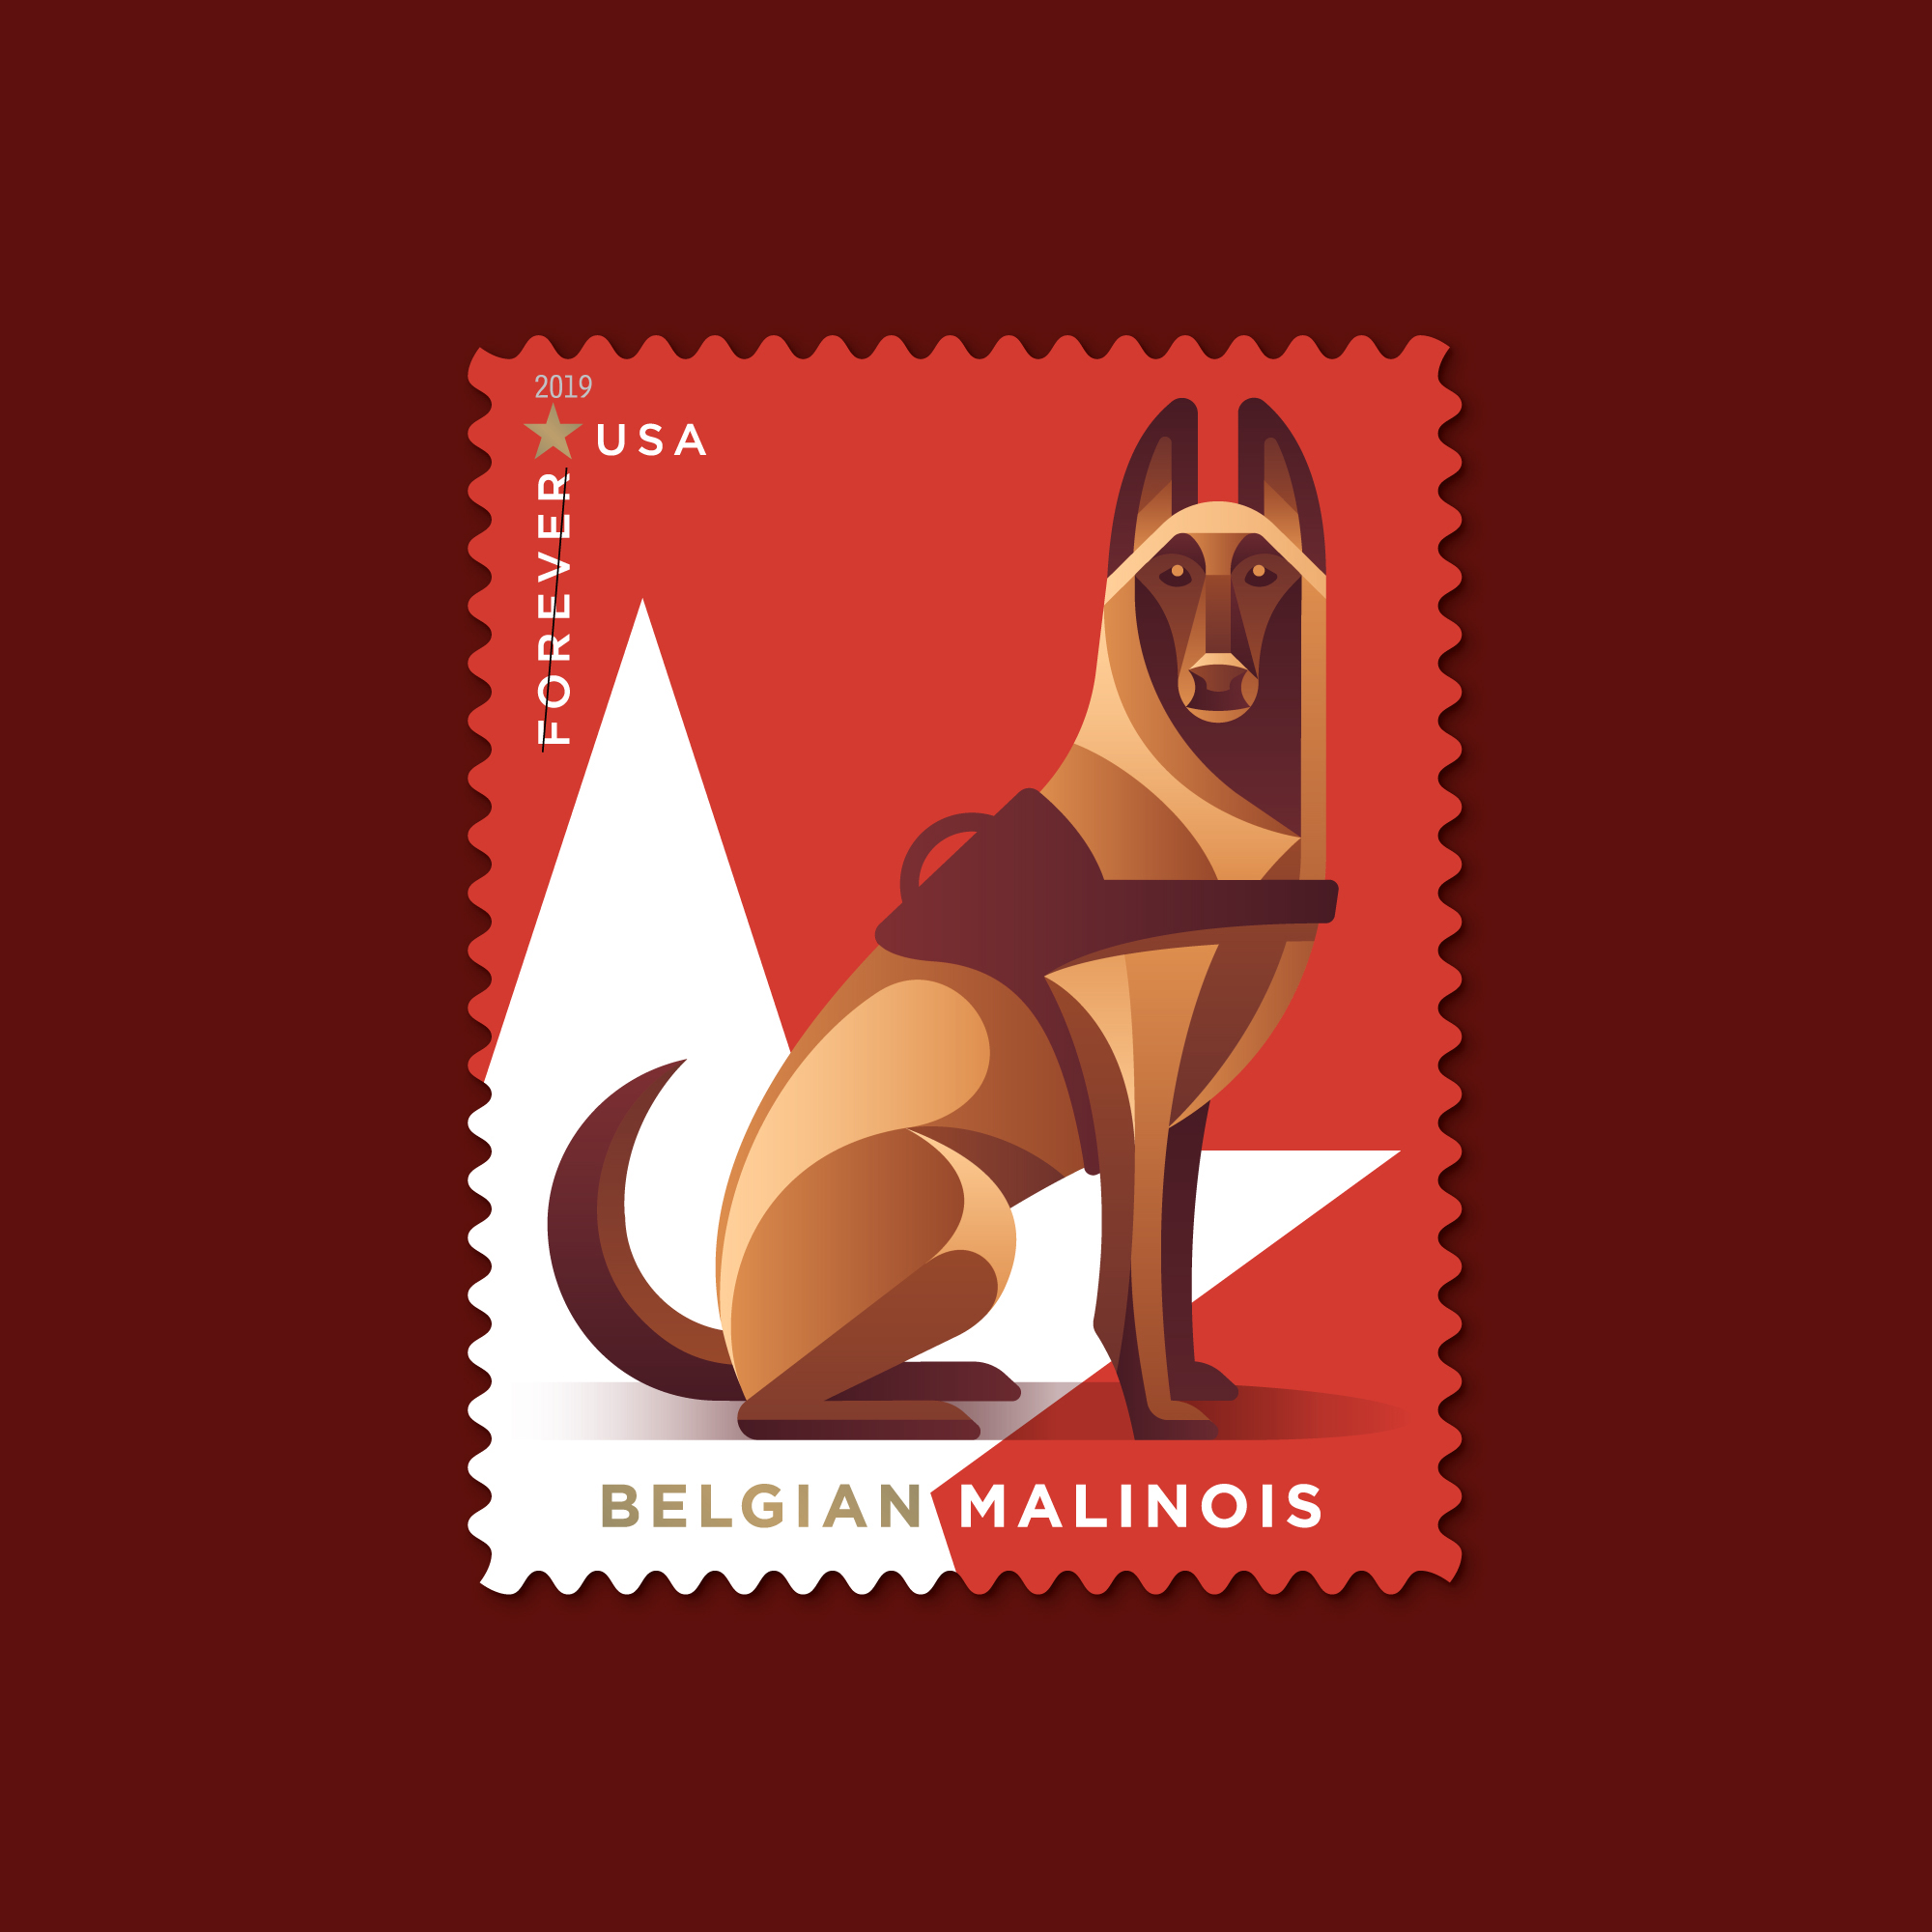 USPS Military Working Dogs Postage Stamps by DKNG